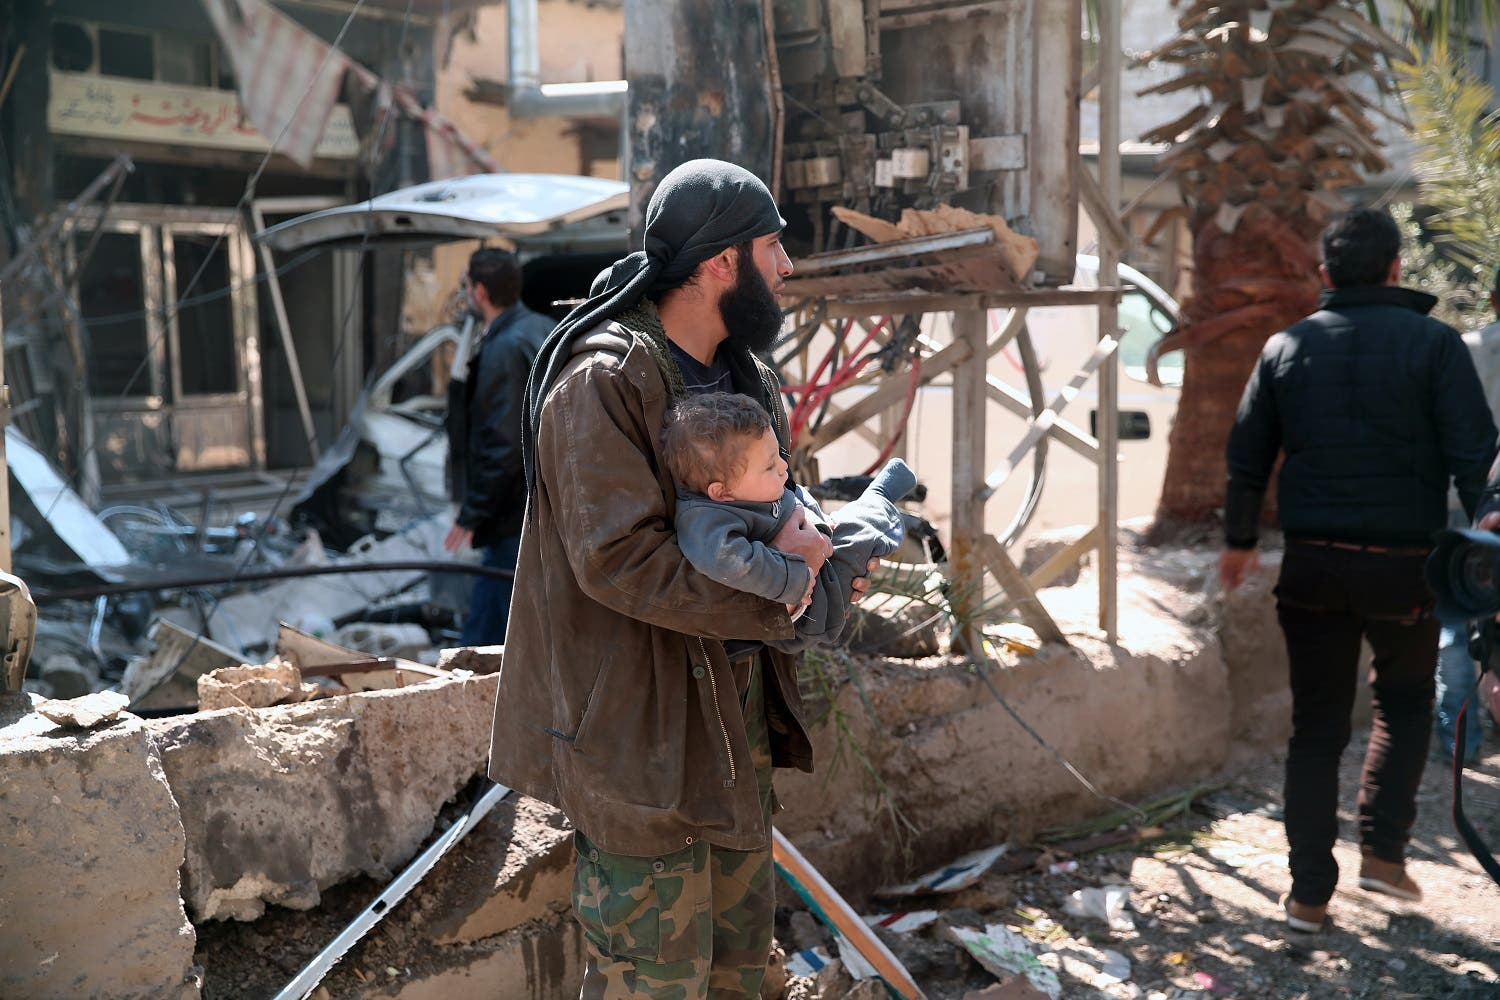 A Syrian man carries a child following reported air-strikes on the rebel-held town of Hamouria, in Eastern Ghouta outside Syria's capital Damascus, on March 25, 2017.AFP